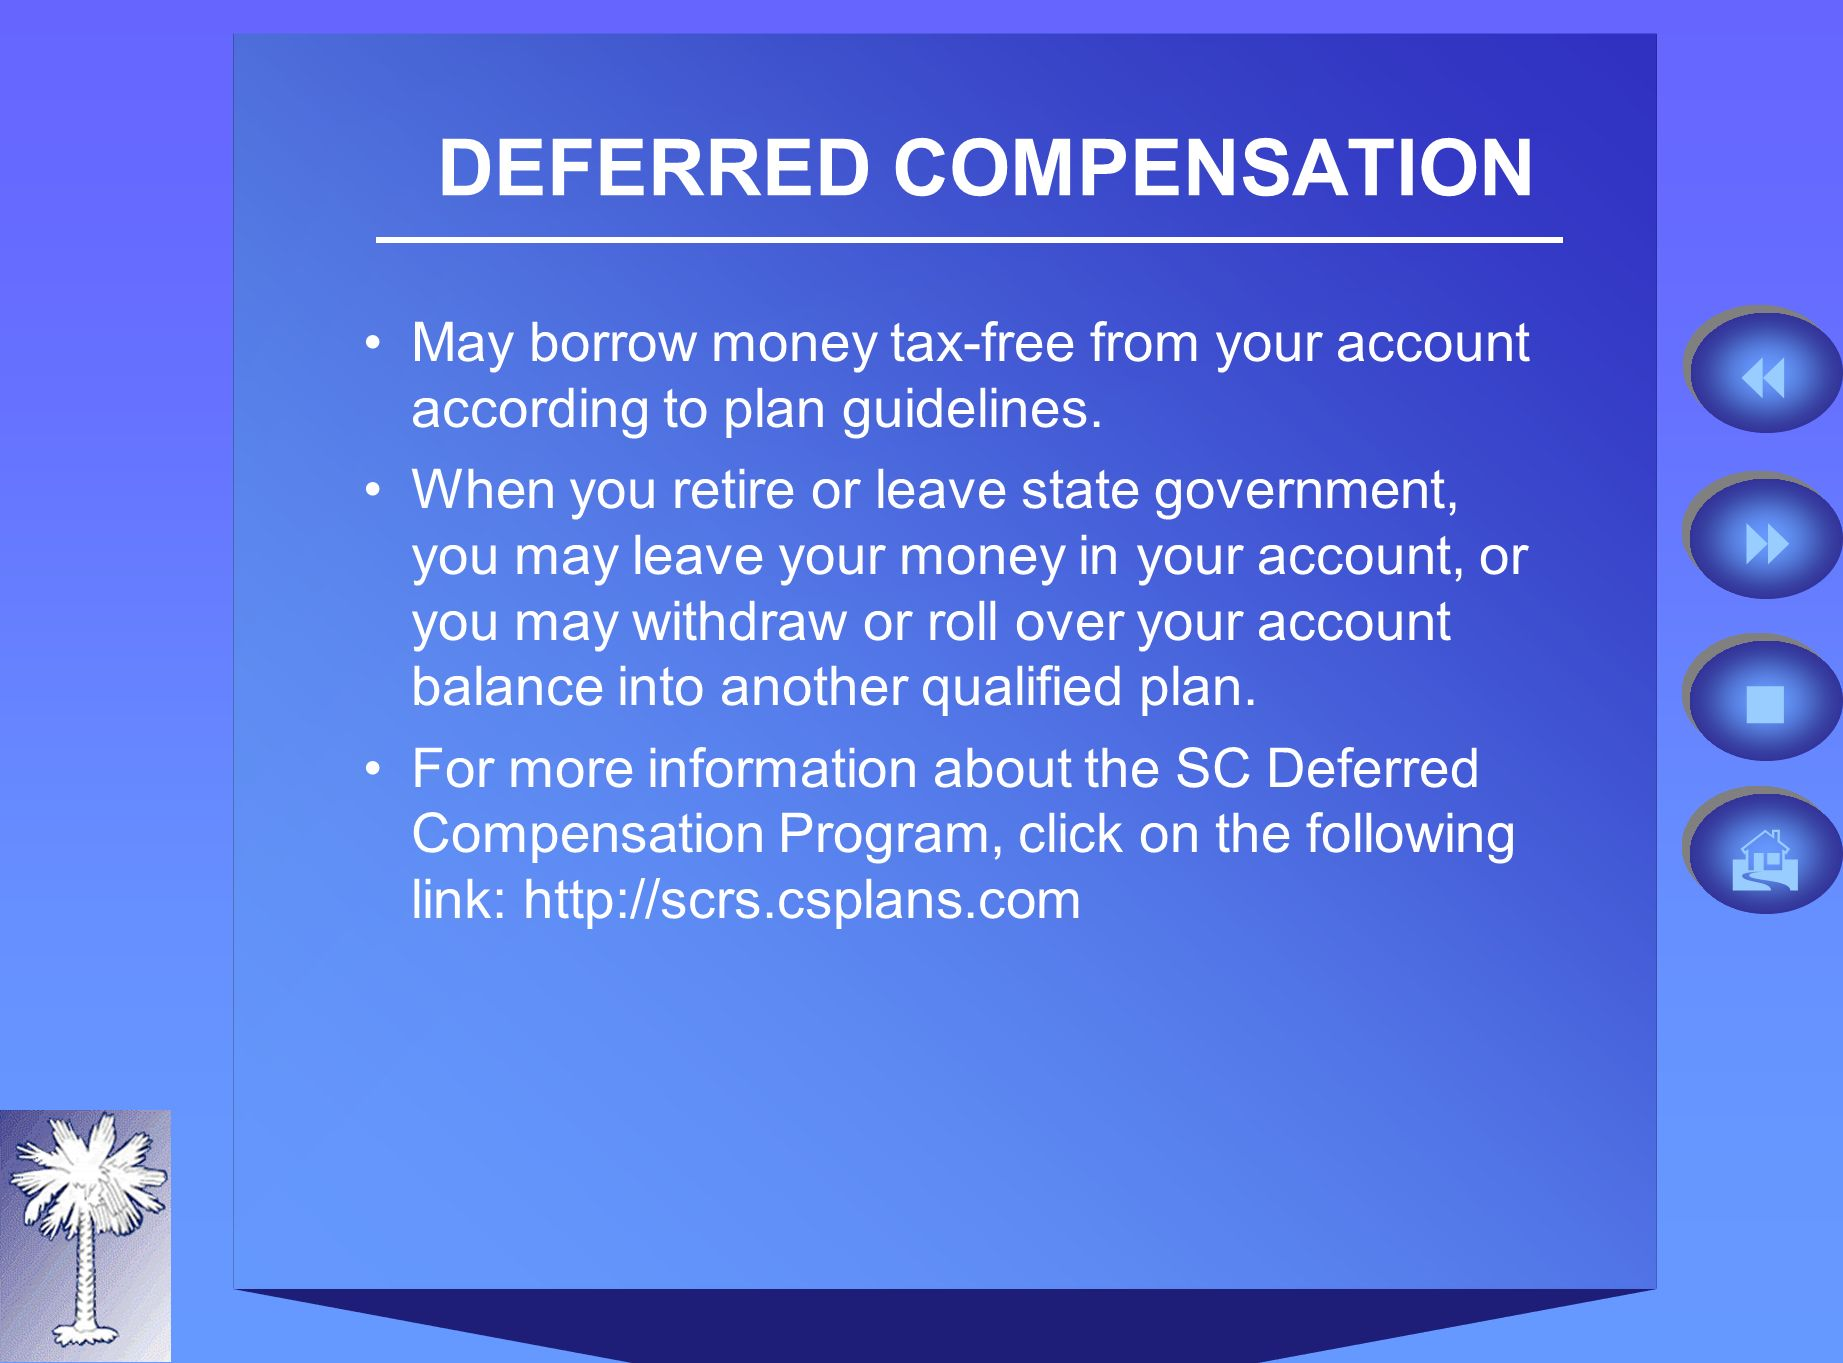 DEFERRED COMPENSATION May borrow money tax-free from your account according to plan guidelines.